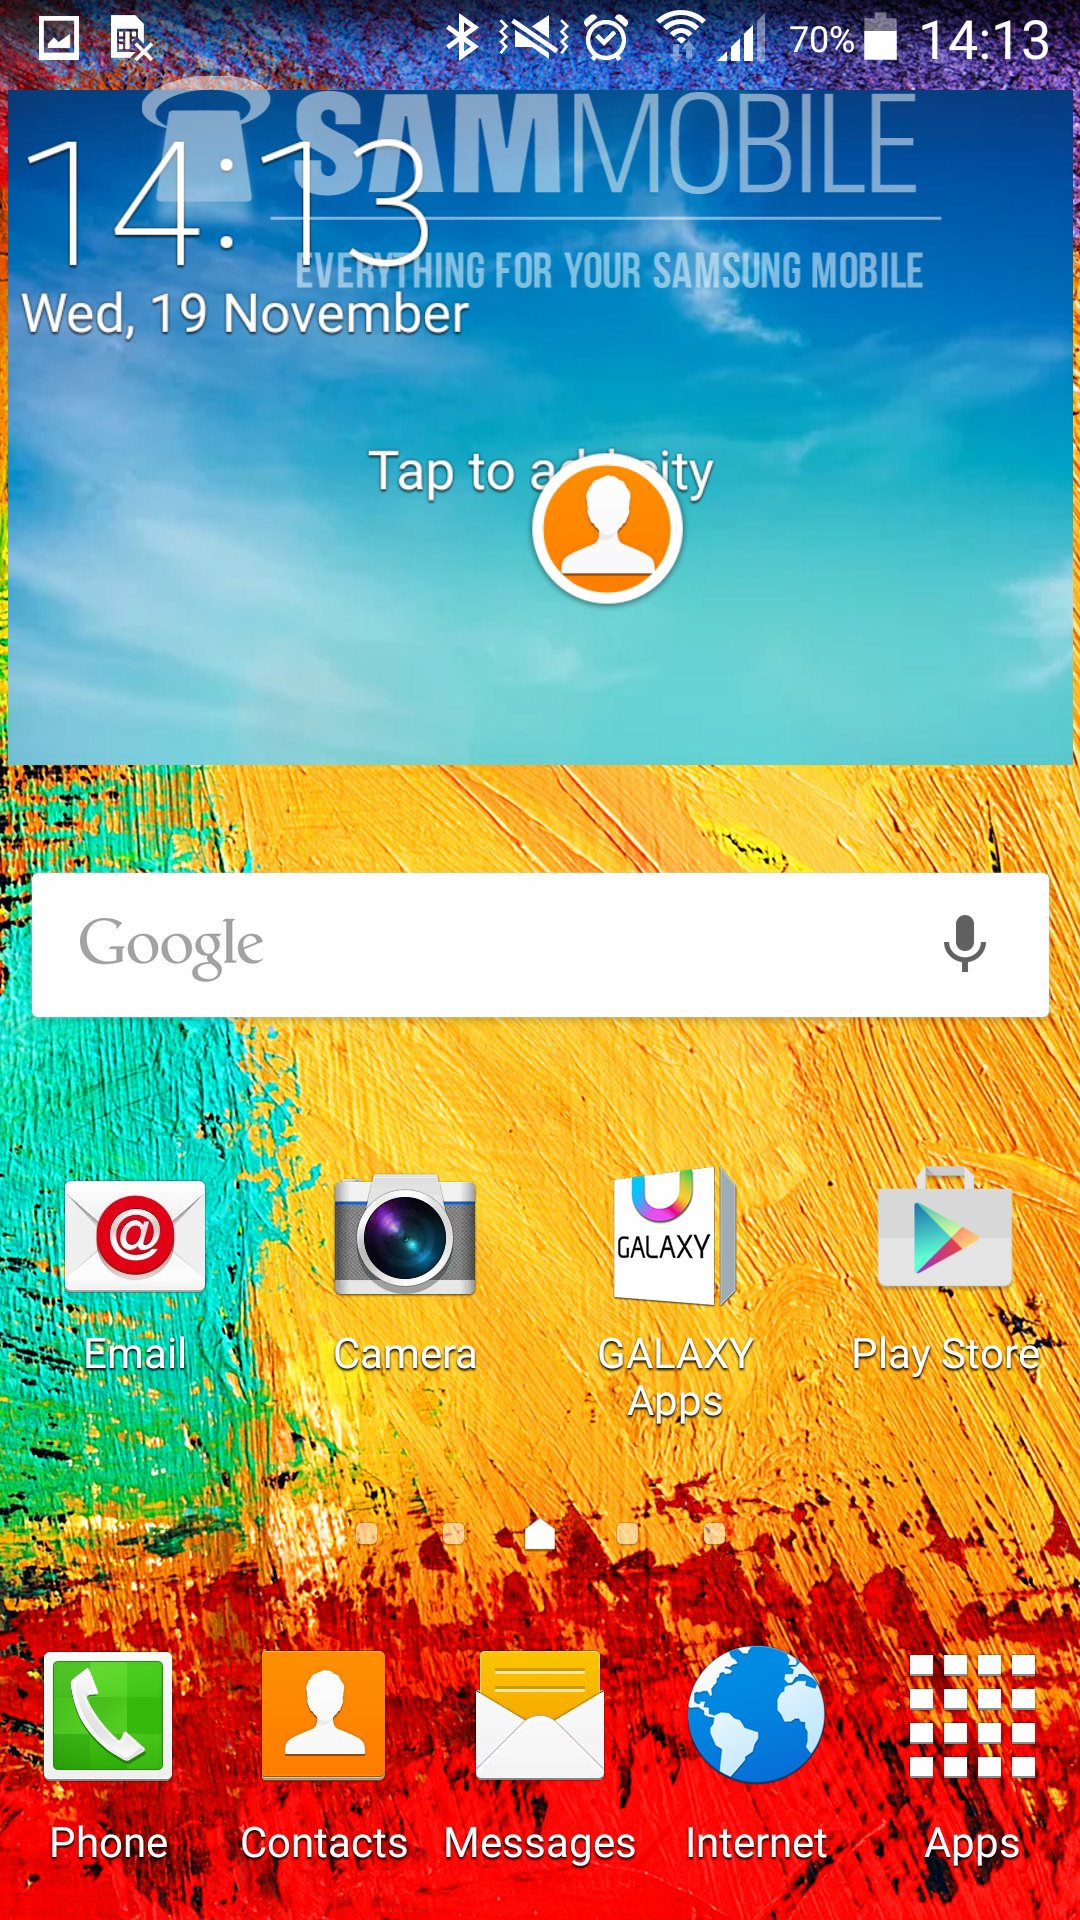 Galaxy Note 3 Running Android 5 0 Lollipop Gets Previewed in